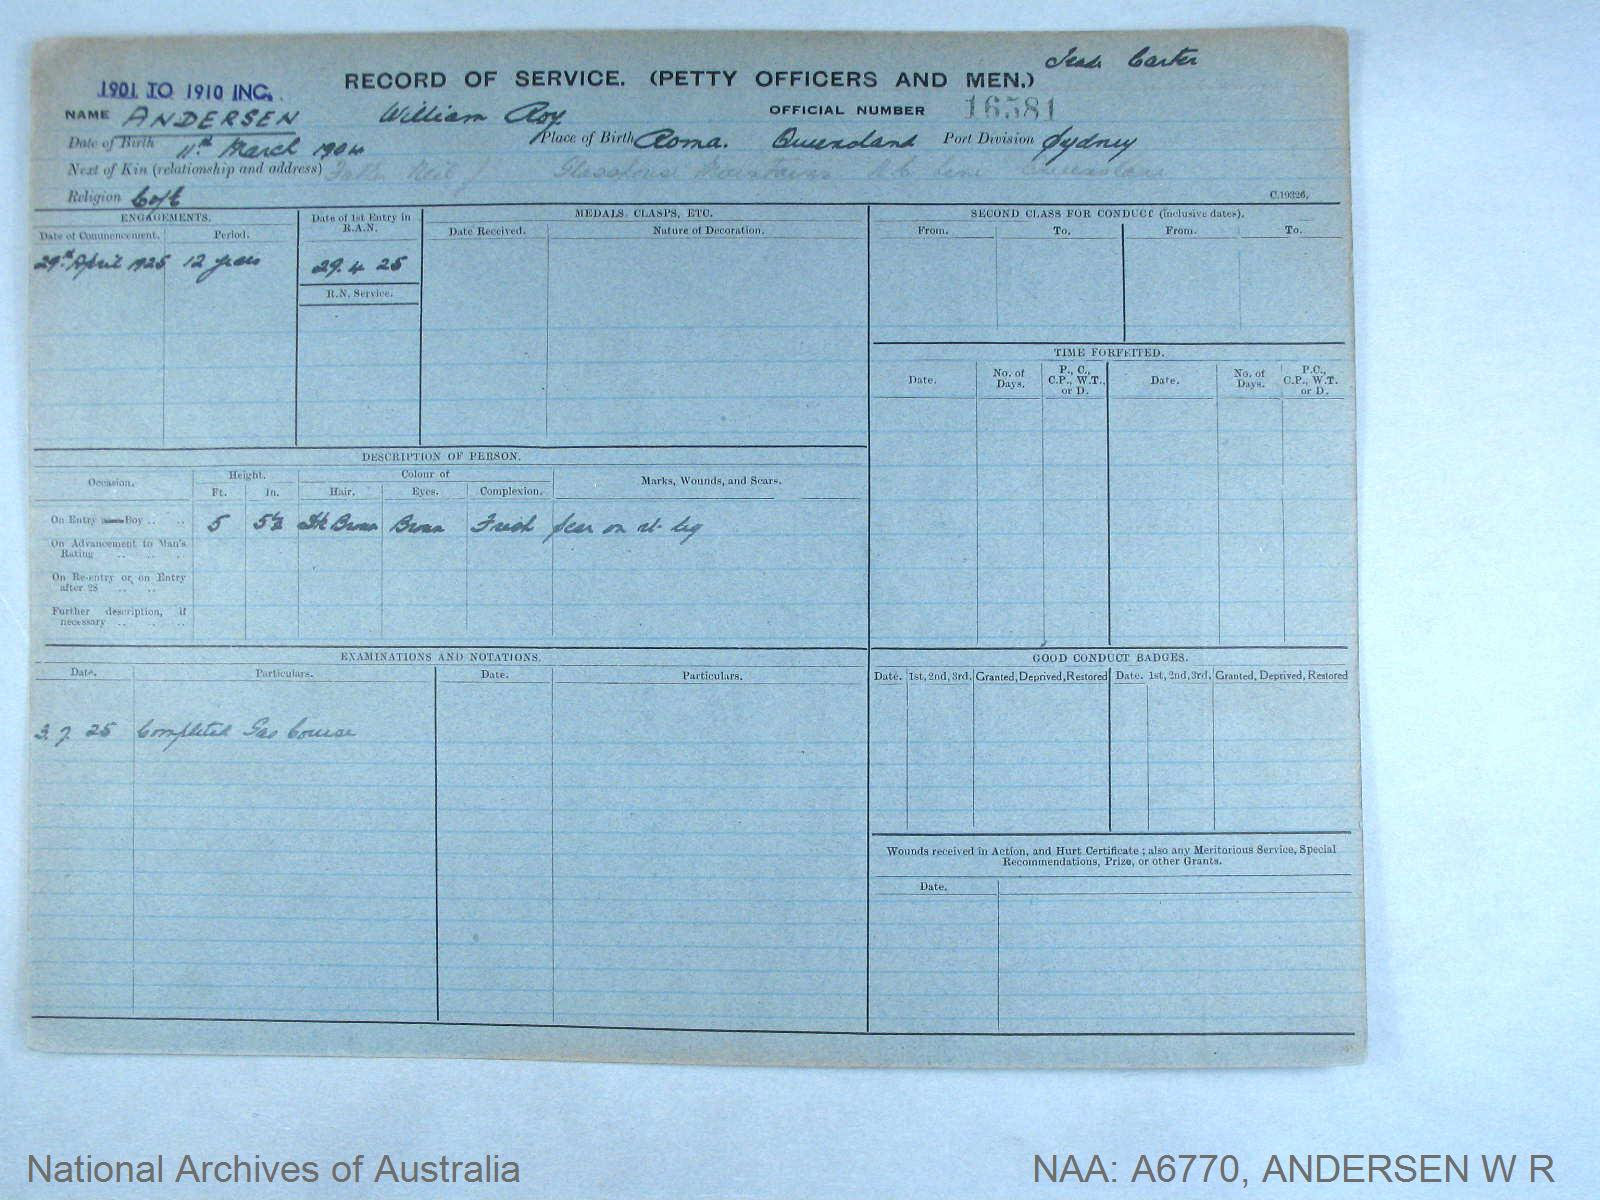 ANDERSEN WILLIAM ROY : Service Number - 16581 : Date of birth - 11 Mar 1904 : Place of birth - ROMA QUEENSLAND : Place of enlistment - SYDNEY : Next of Kin - ANDERSEN NEIL